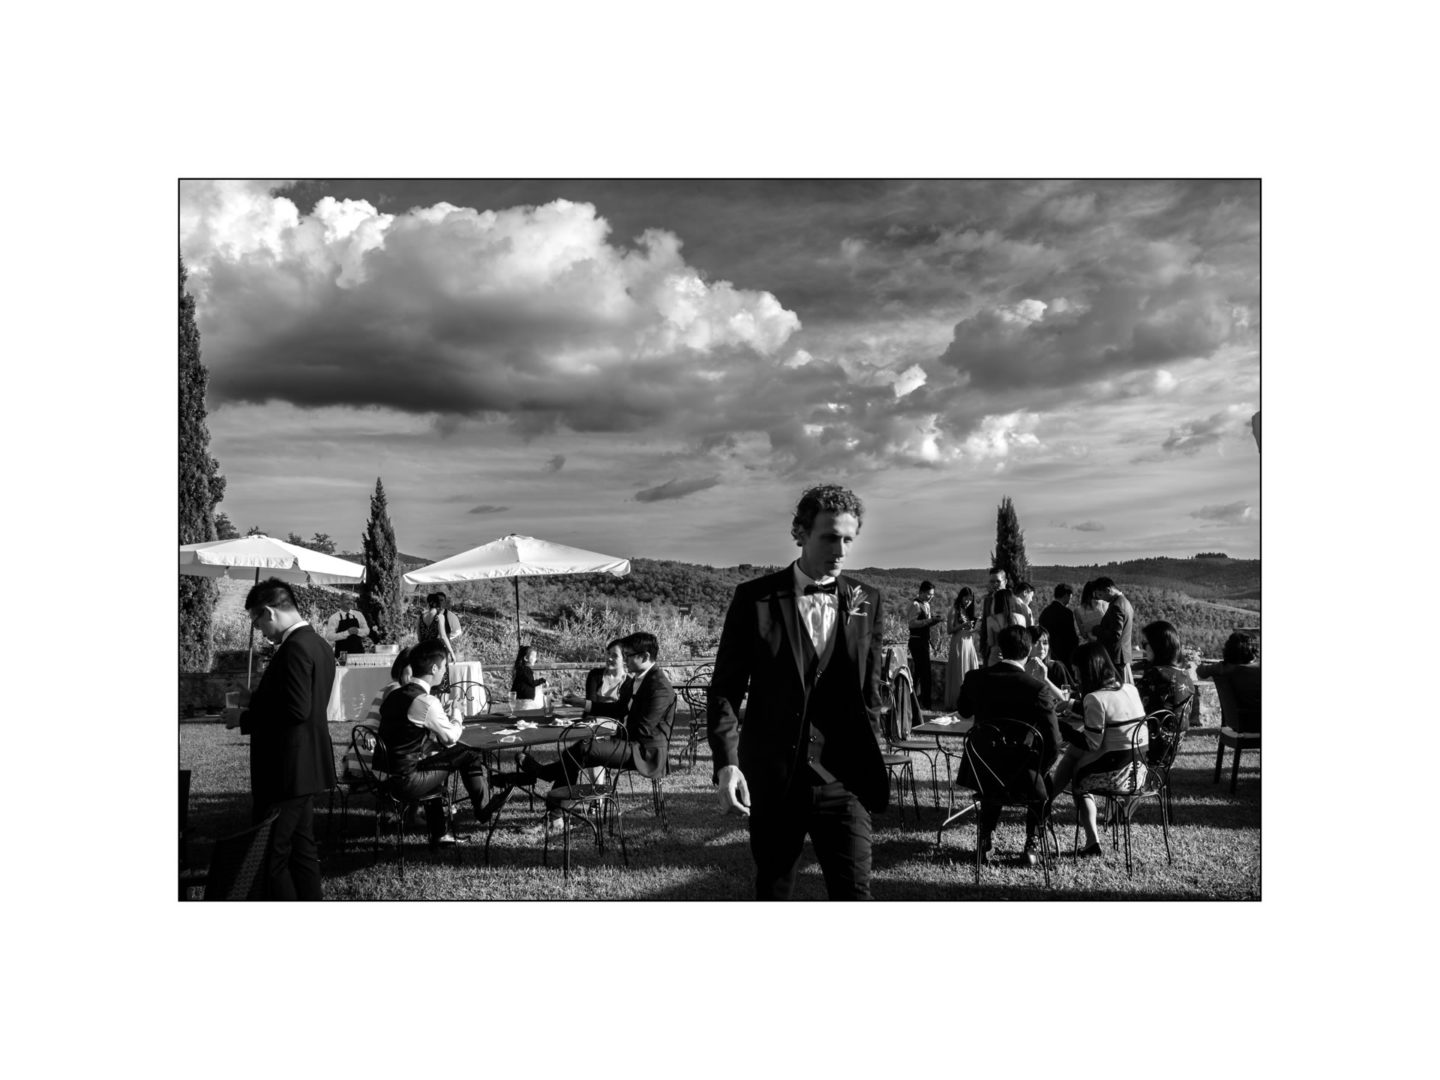 castello-di-meleto-david-bastianoni-photographer-00030 :: Black and white wedding_ Castello di Meleto :: Luxury wedding photography - 29 :: castello-di-meleto-david-bastianoni-photographer-00030